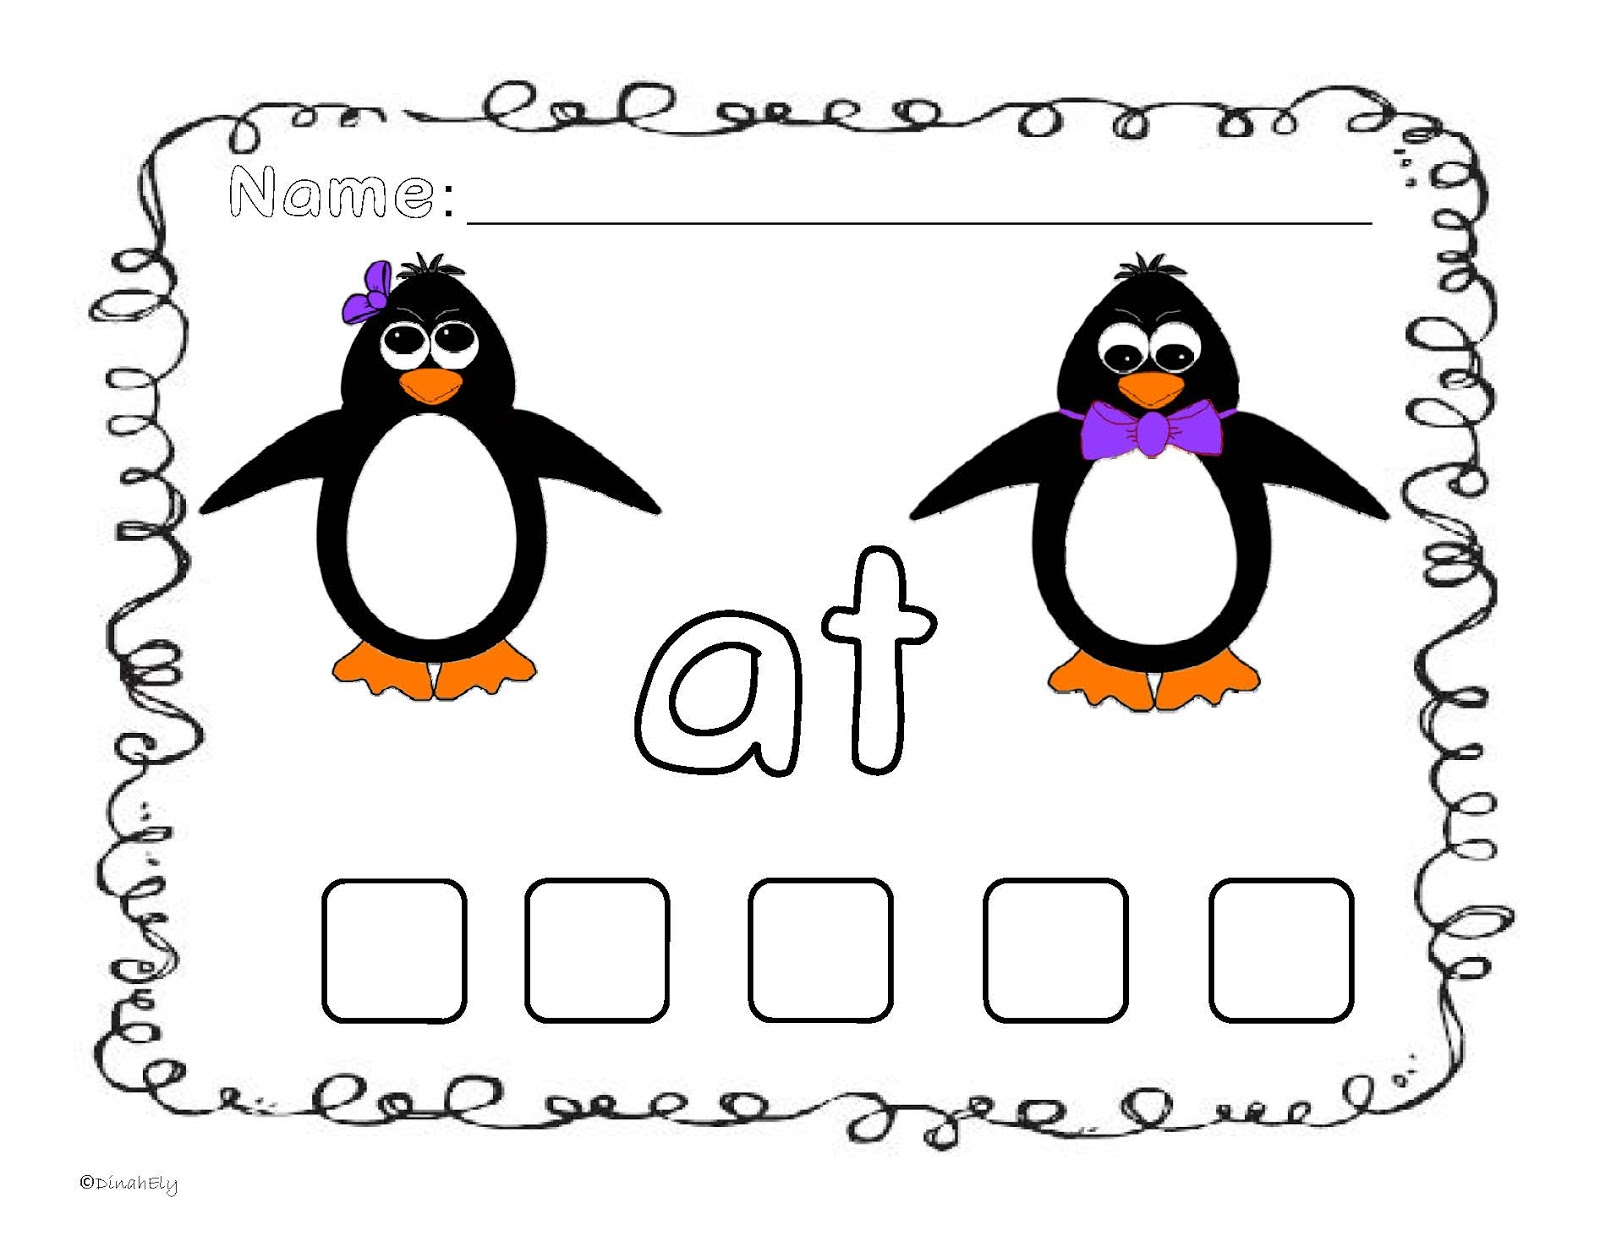 The Traveling Classroom Arctic Penguin Spoons Literacy